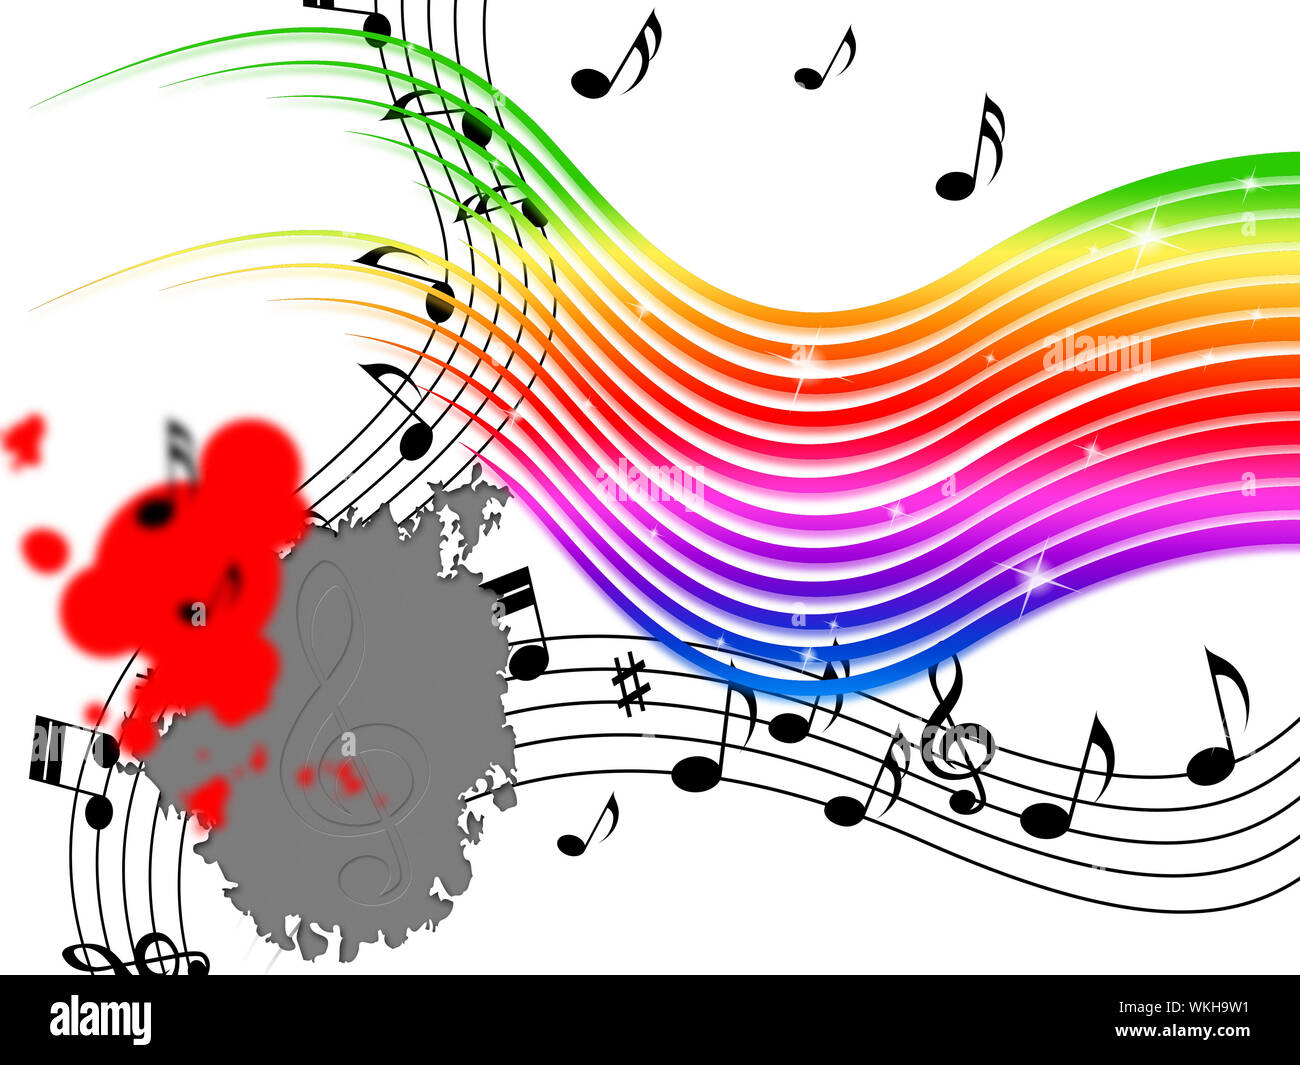 Rainbow Music Background Meaning Stripes And Playing Instruments Stock Photo Alamy